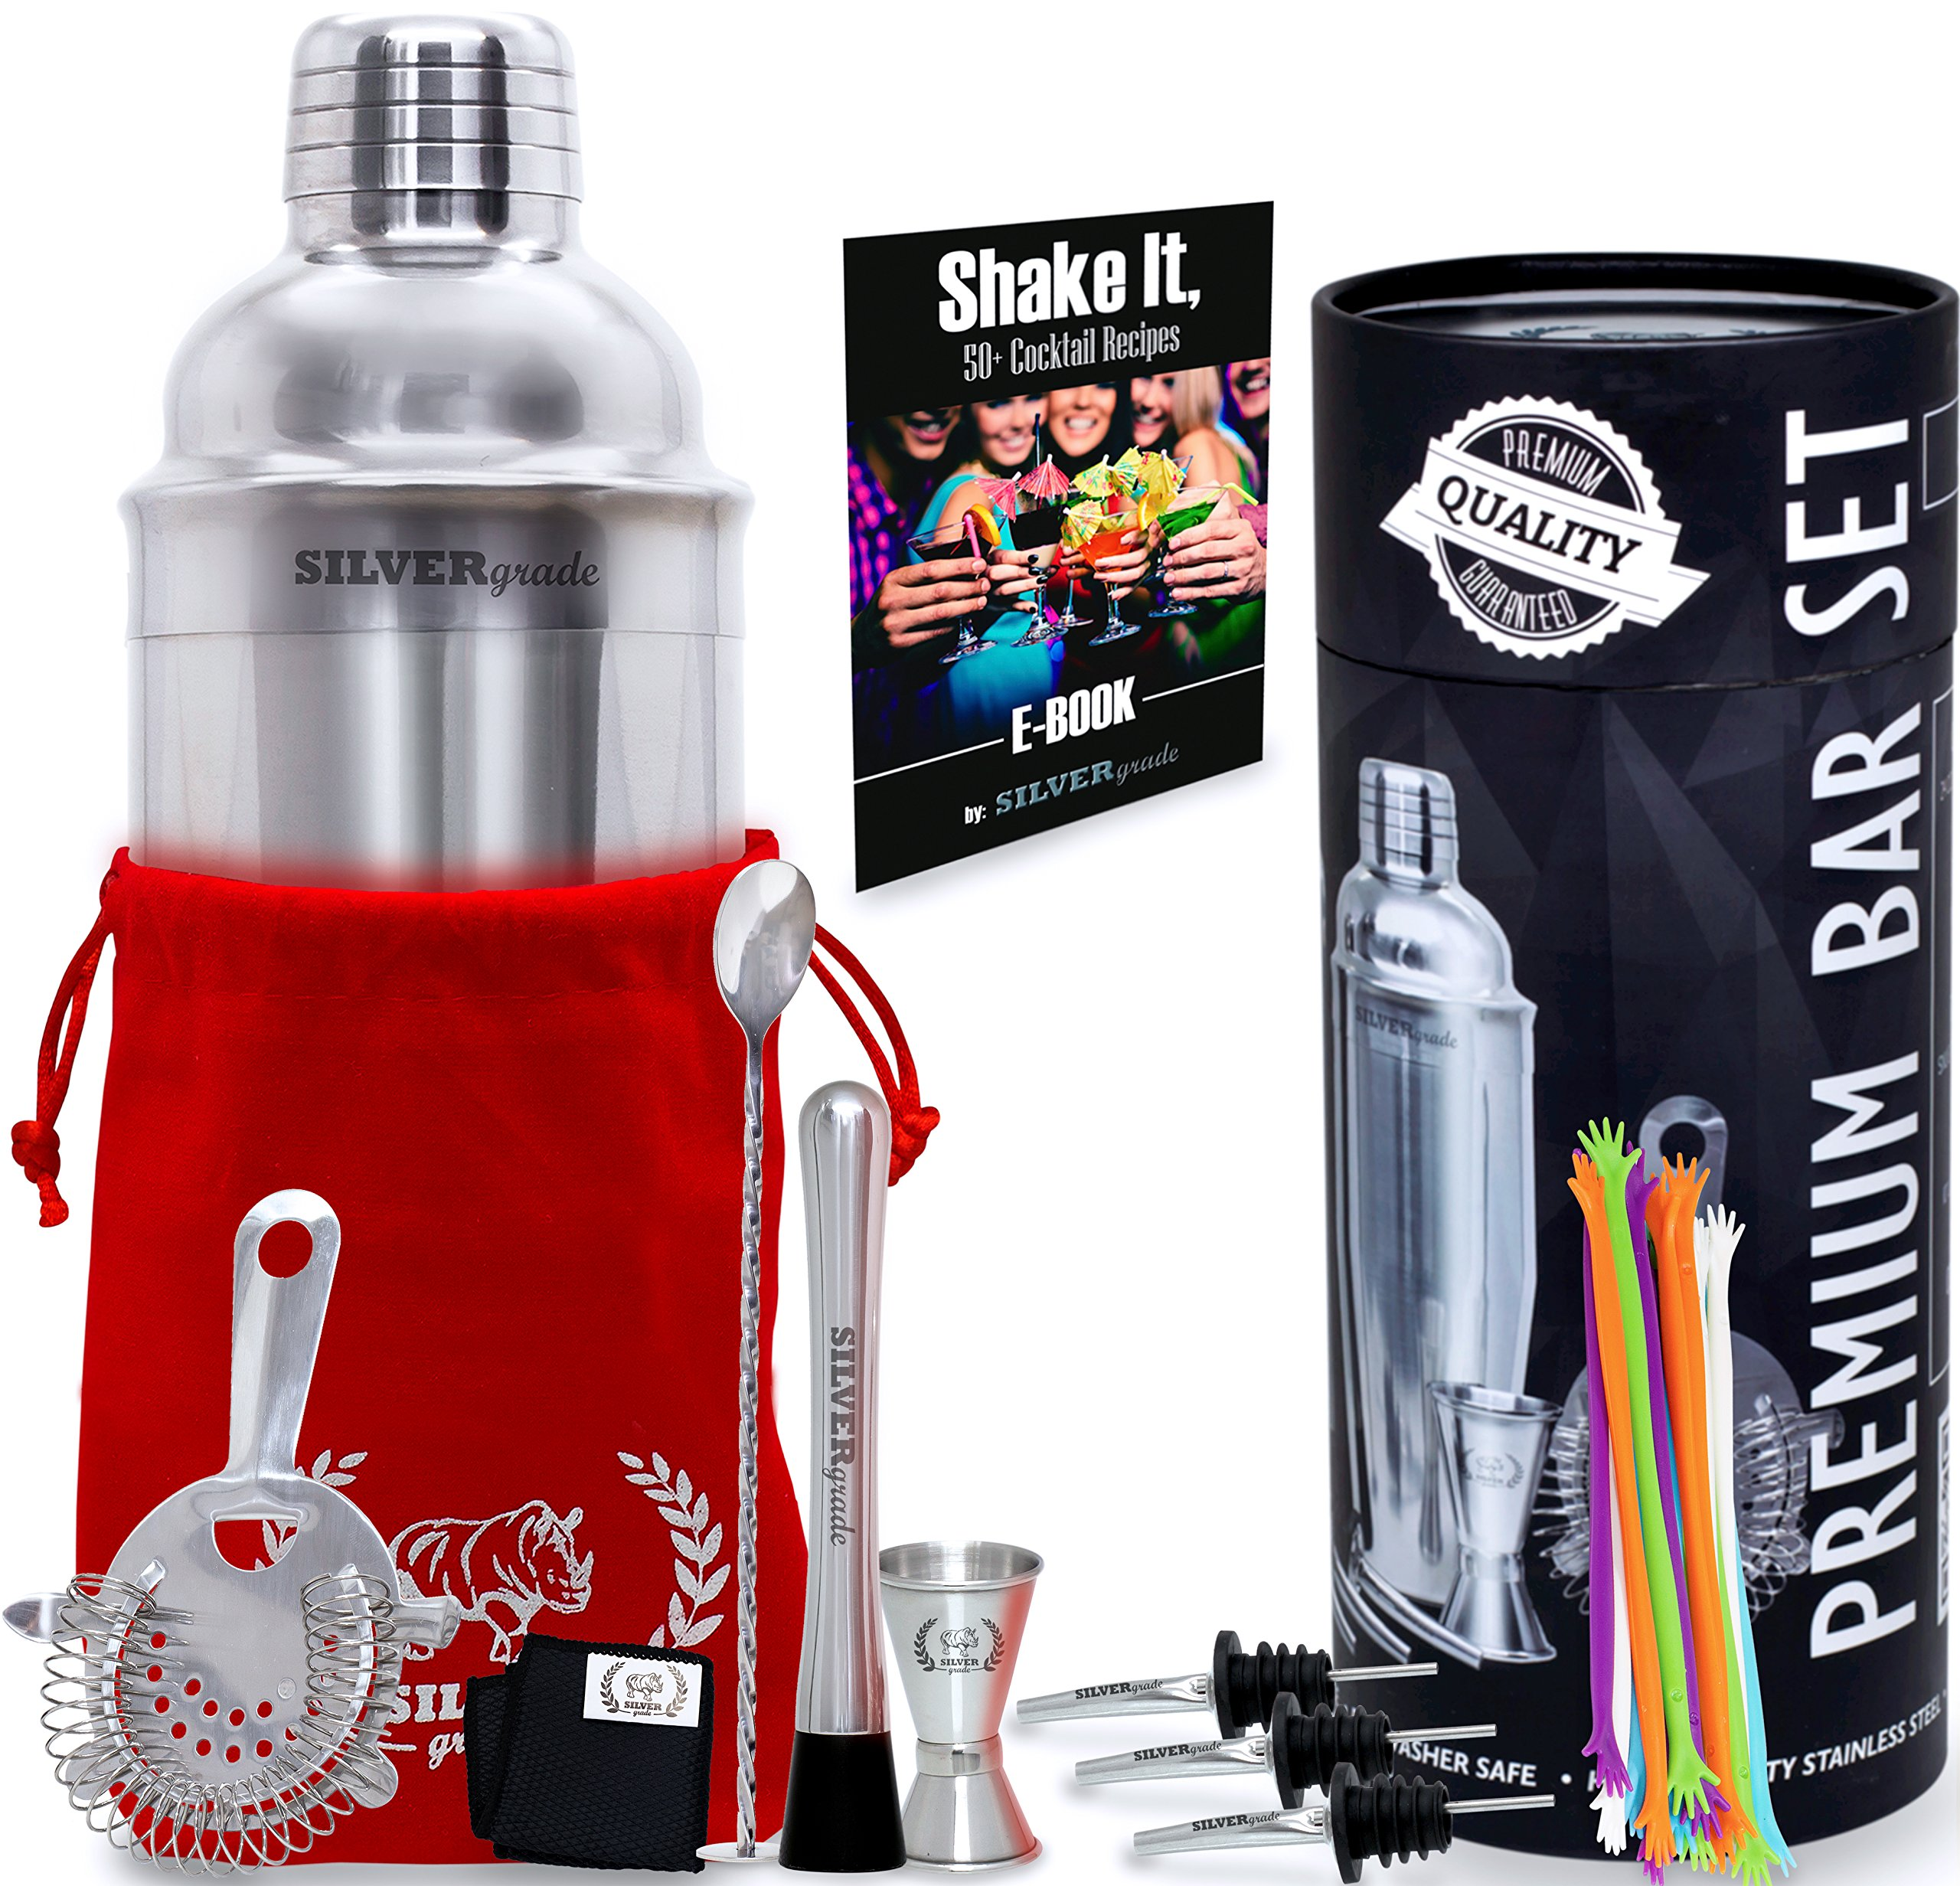 Professional all Inclusive Bartender Kit - Premium Quality- Stainless Steel Construction- Luxury Bag - Cocktail Shaker and all the Accessories you Need - Perfect Addition To Your Home Bar Collection by SILVERgrade